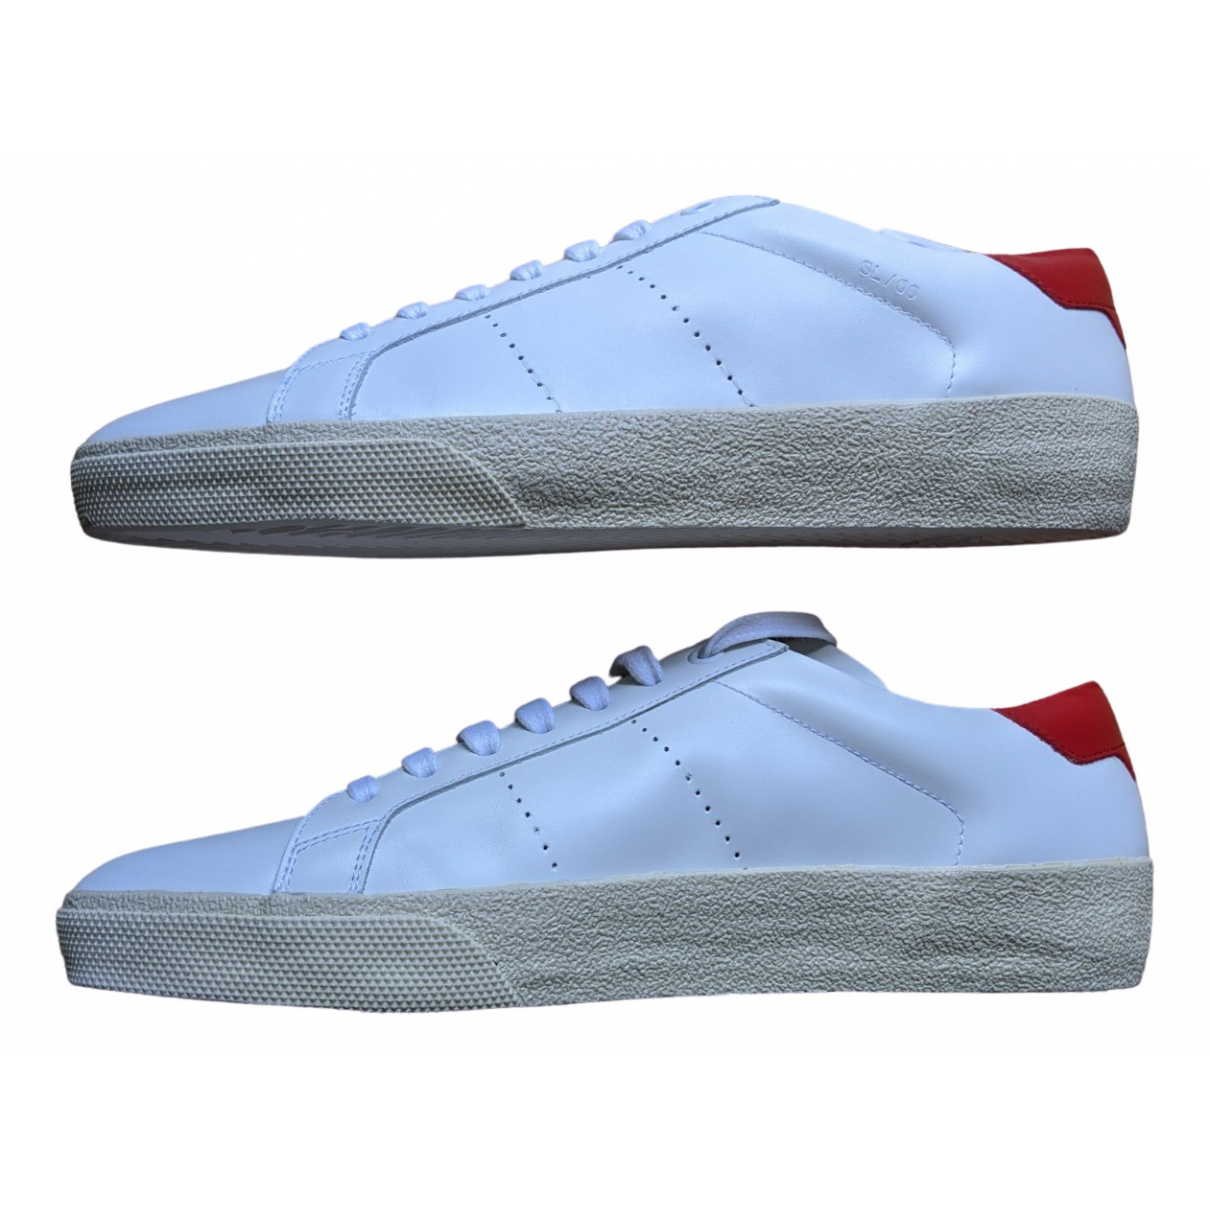 Saint Laurent SL/06 White Leather Trainers for Men 40 EU